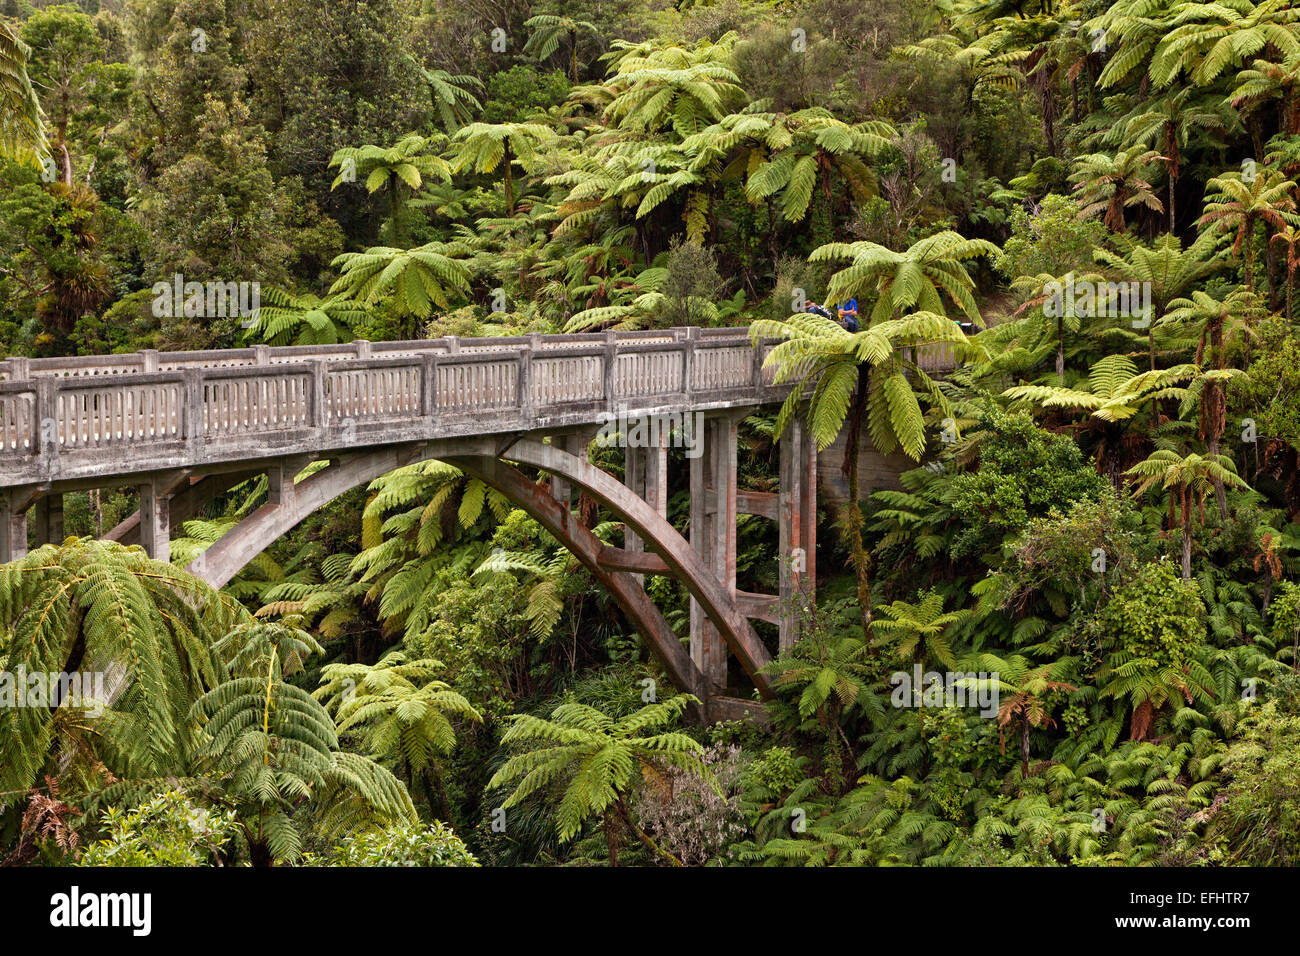 Bridge to Nowhere, a concrete road bridge with no road leading to it, tree ferns, walking track, Whanganui River, - Stock Image